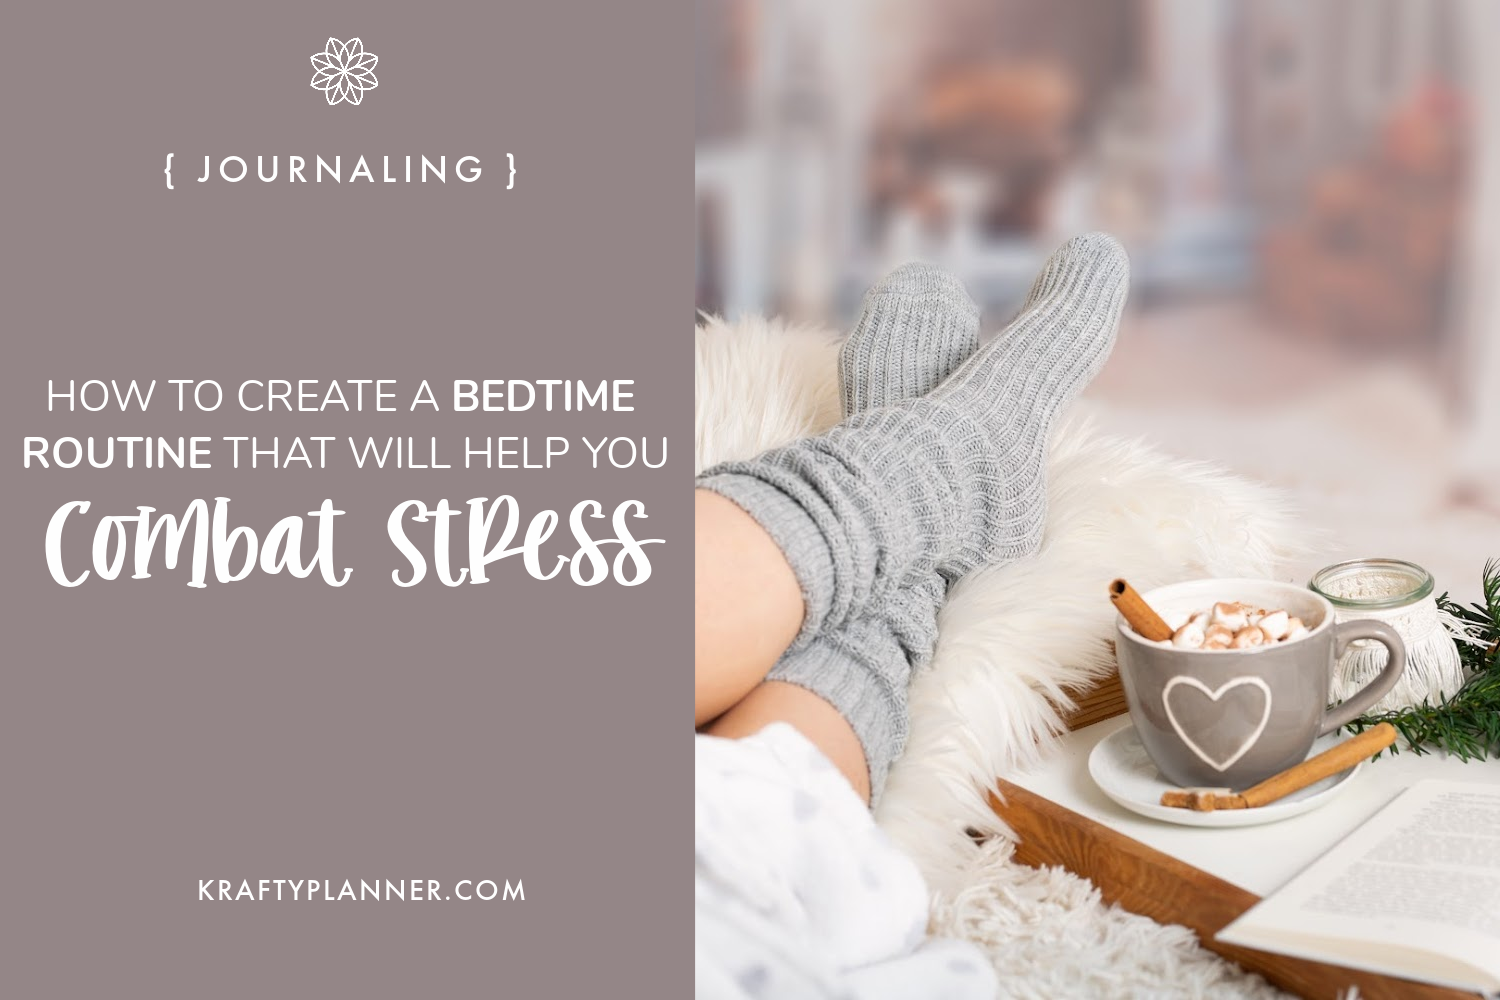 How to Create a Bedtime Routine That Will Help You Combat Stress Main Image.png